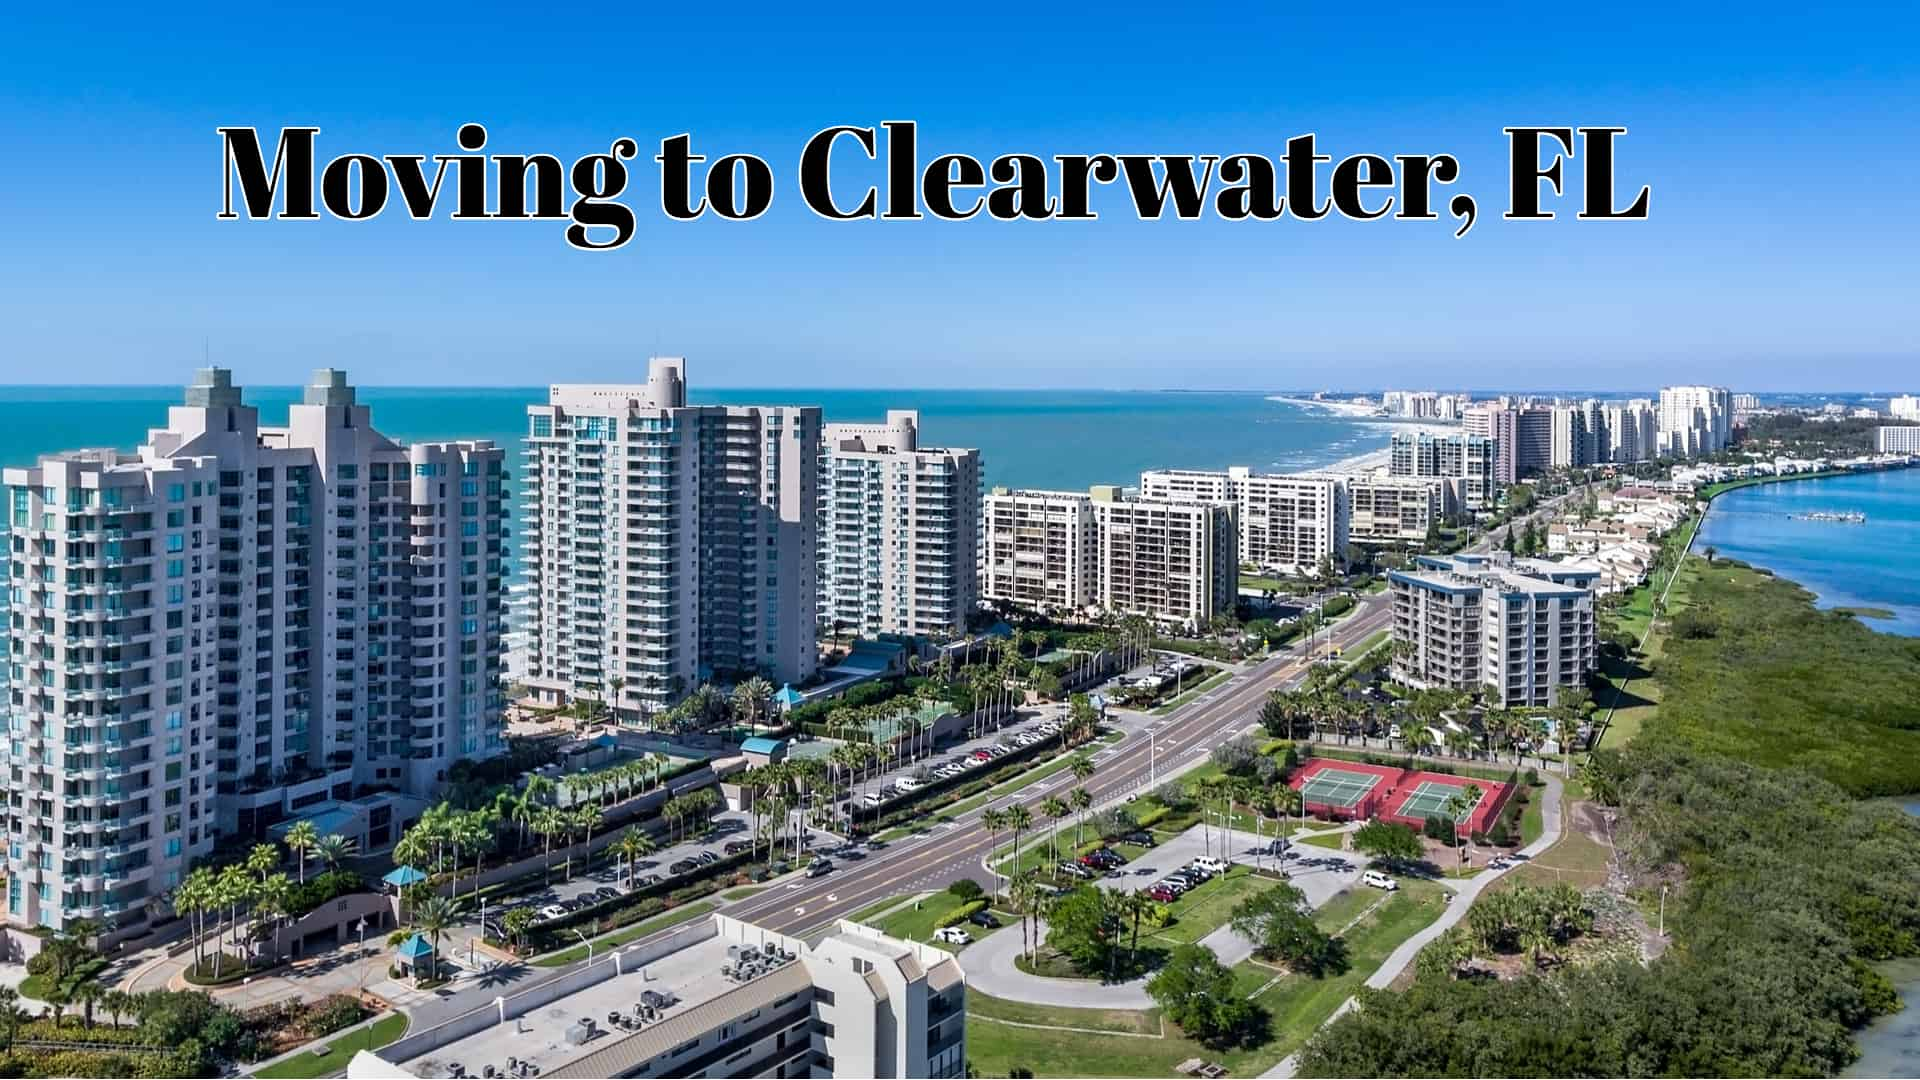 Aerial view of Clearwater, FL and the ocean beyond.